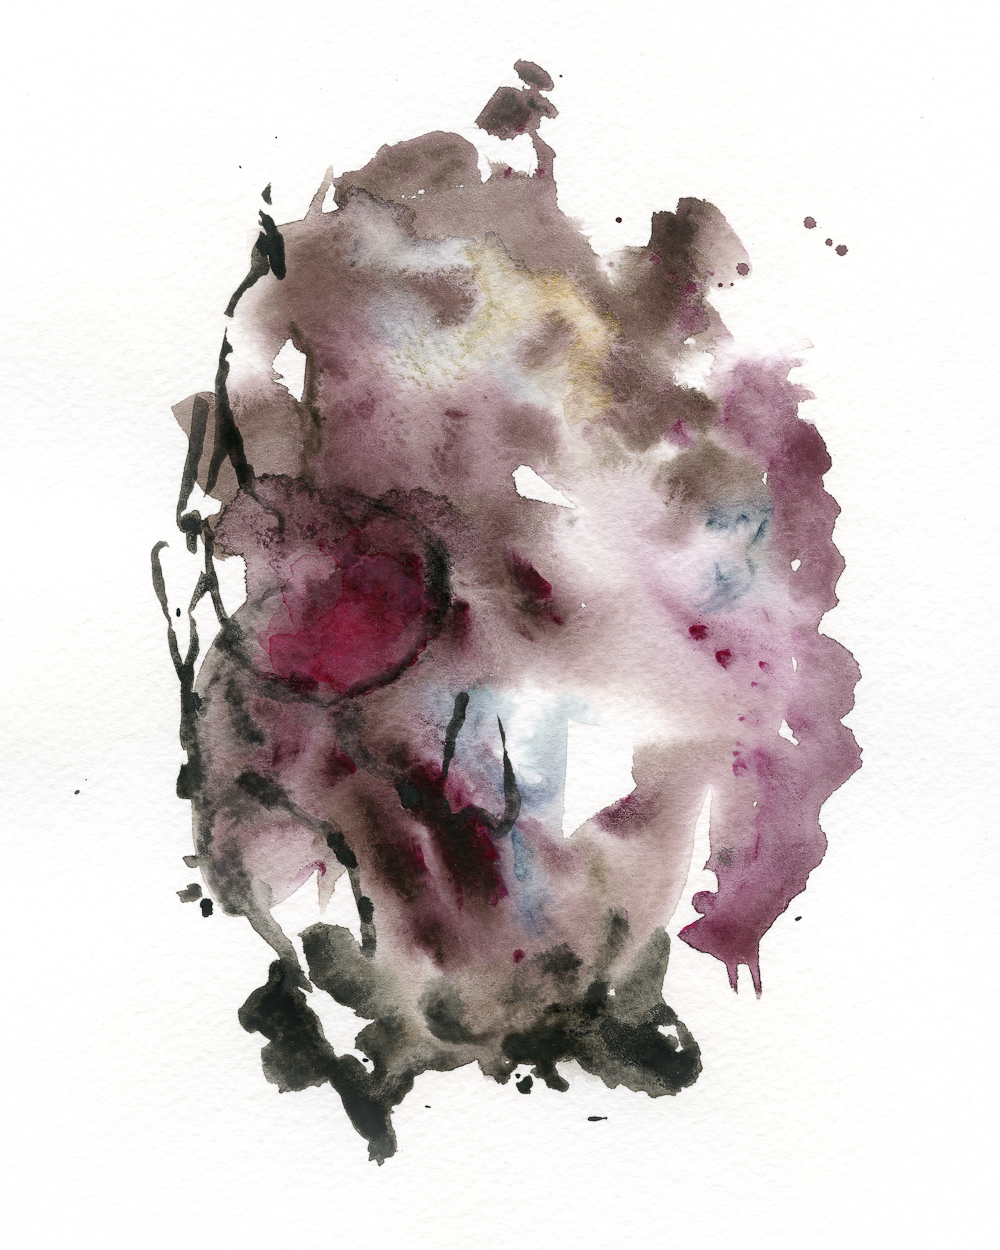 watercolor004.jpg